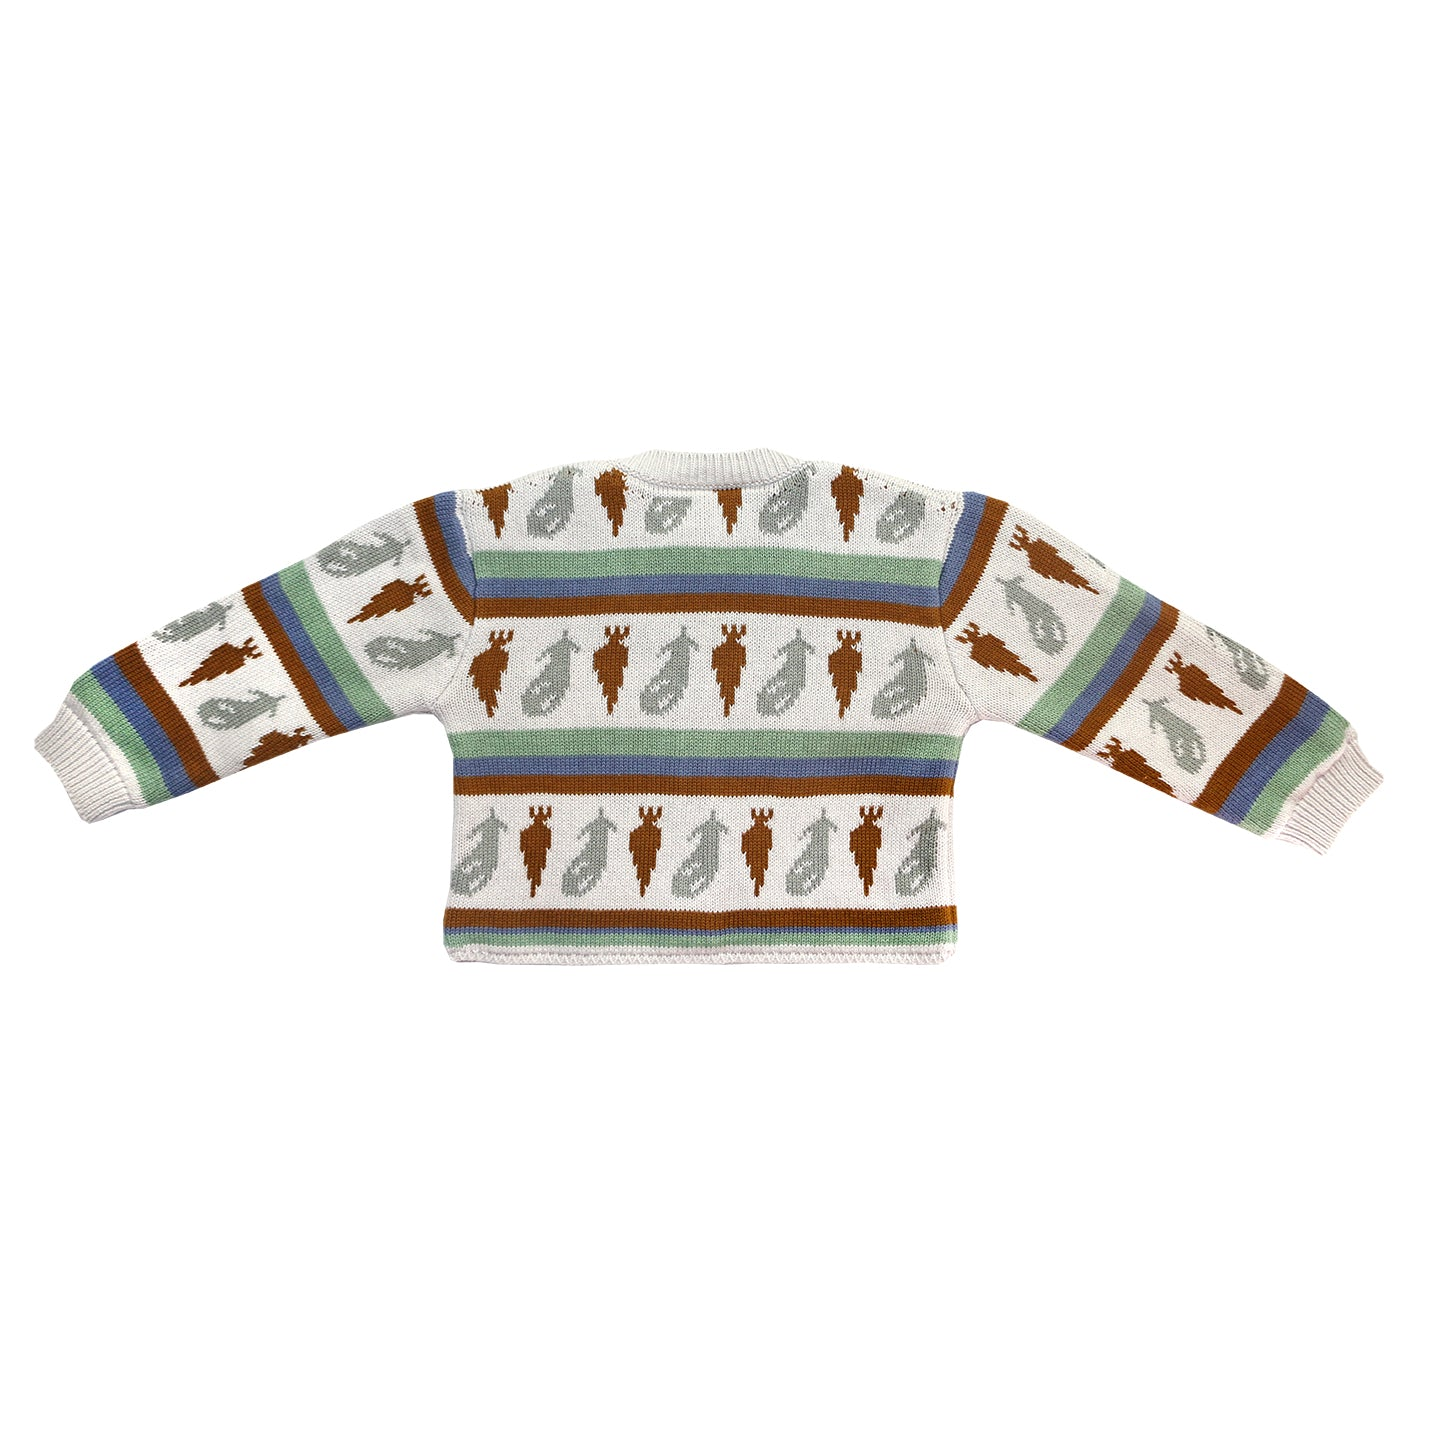 Load image into Gallery viewer, Coco Au Lait KNITTED CARDIGAN Sweater Multicolor Stripes